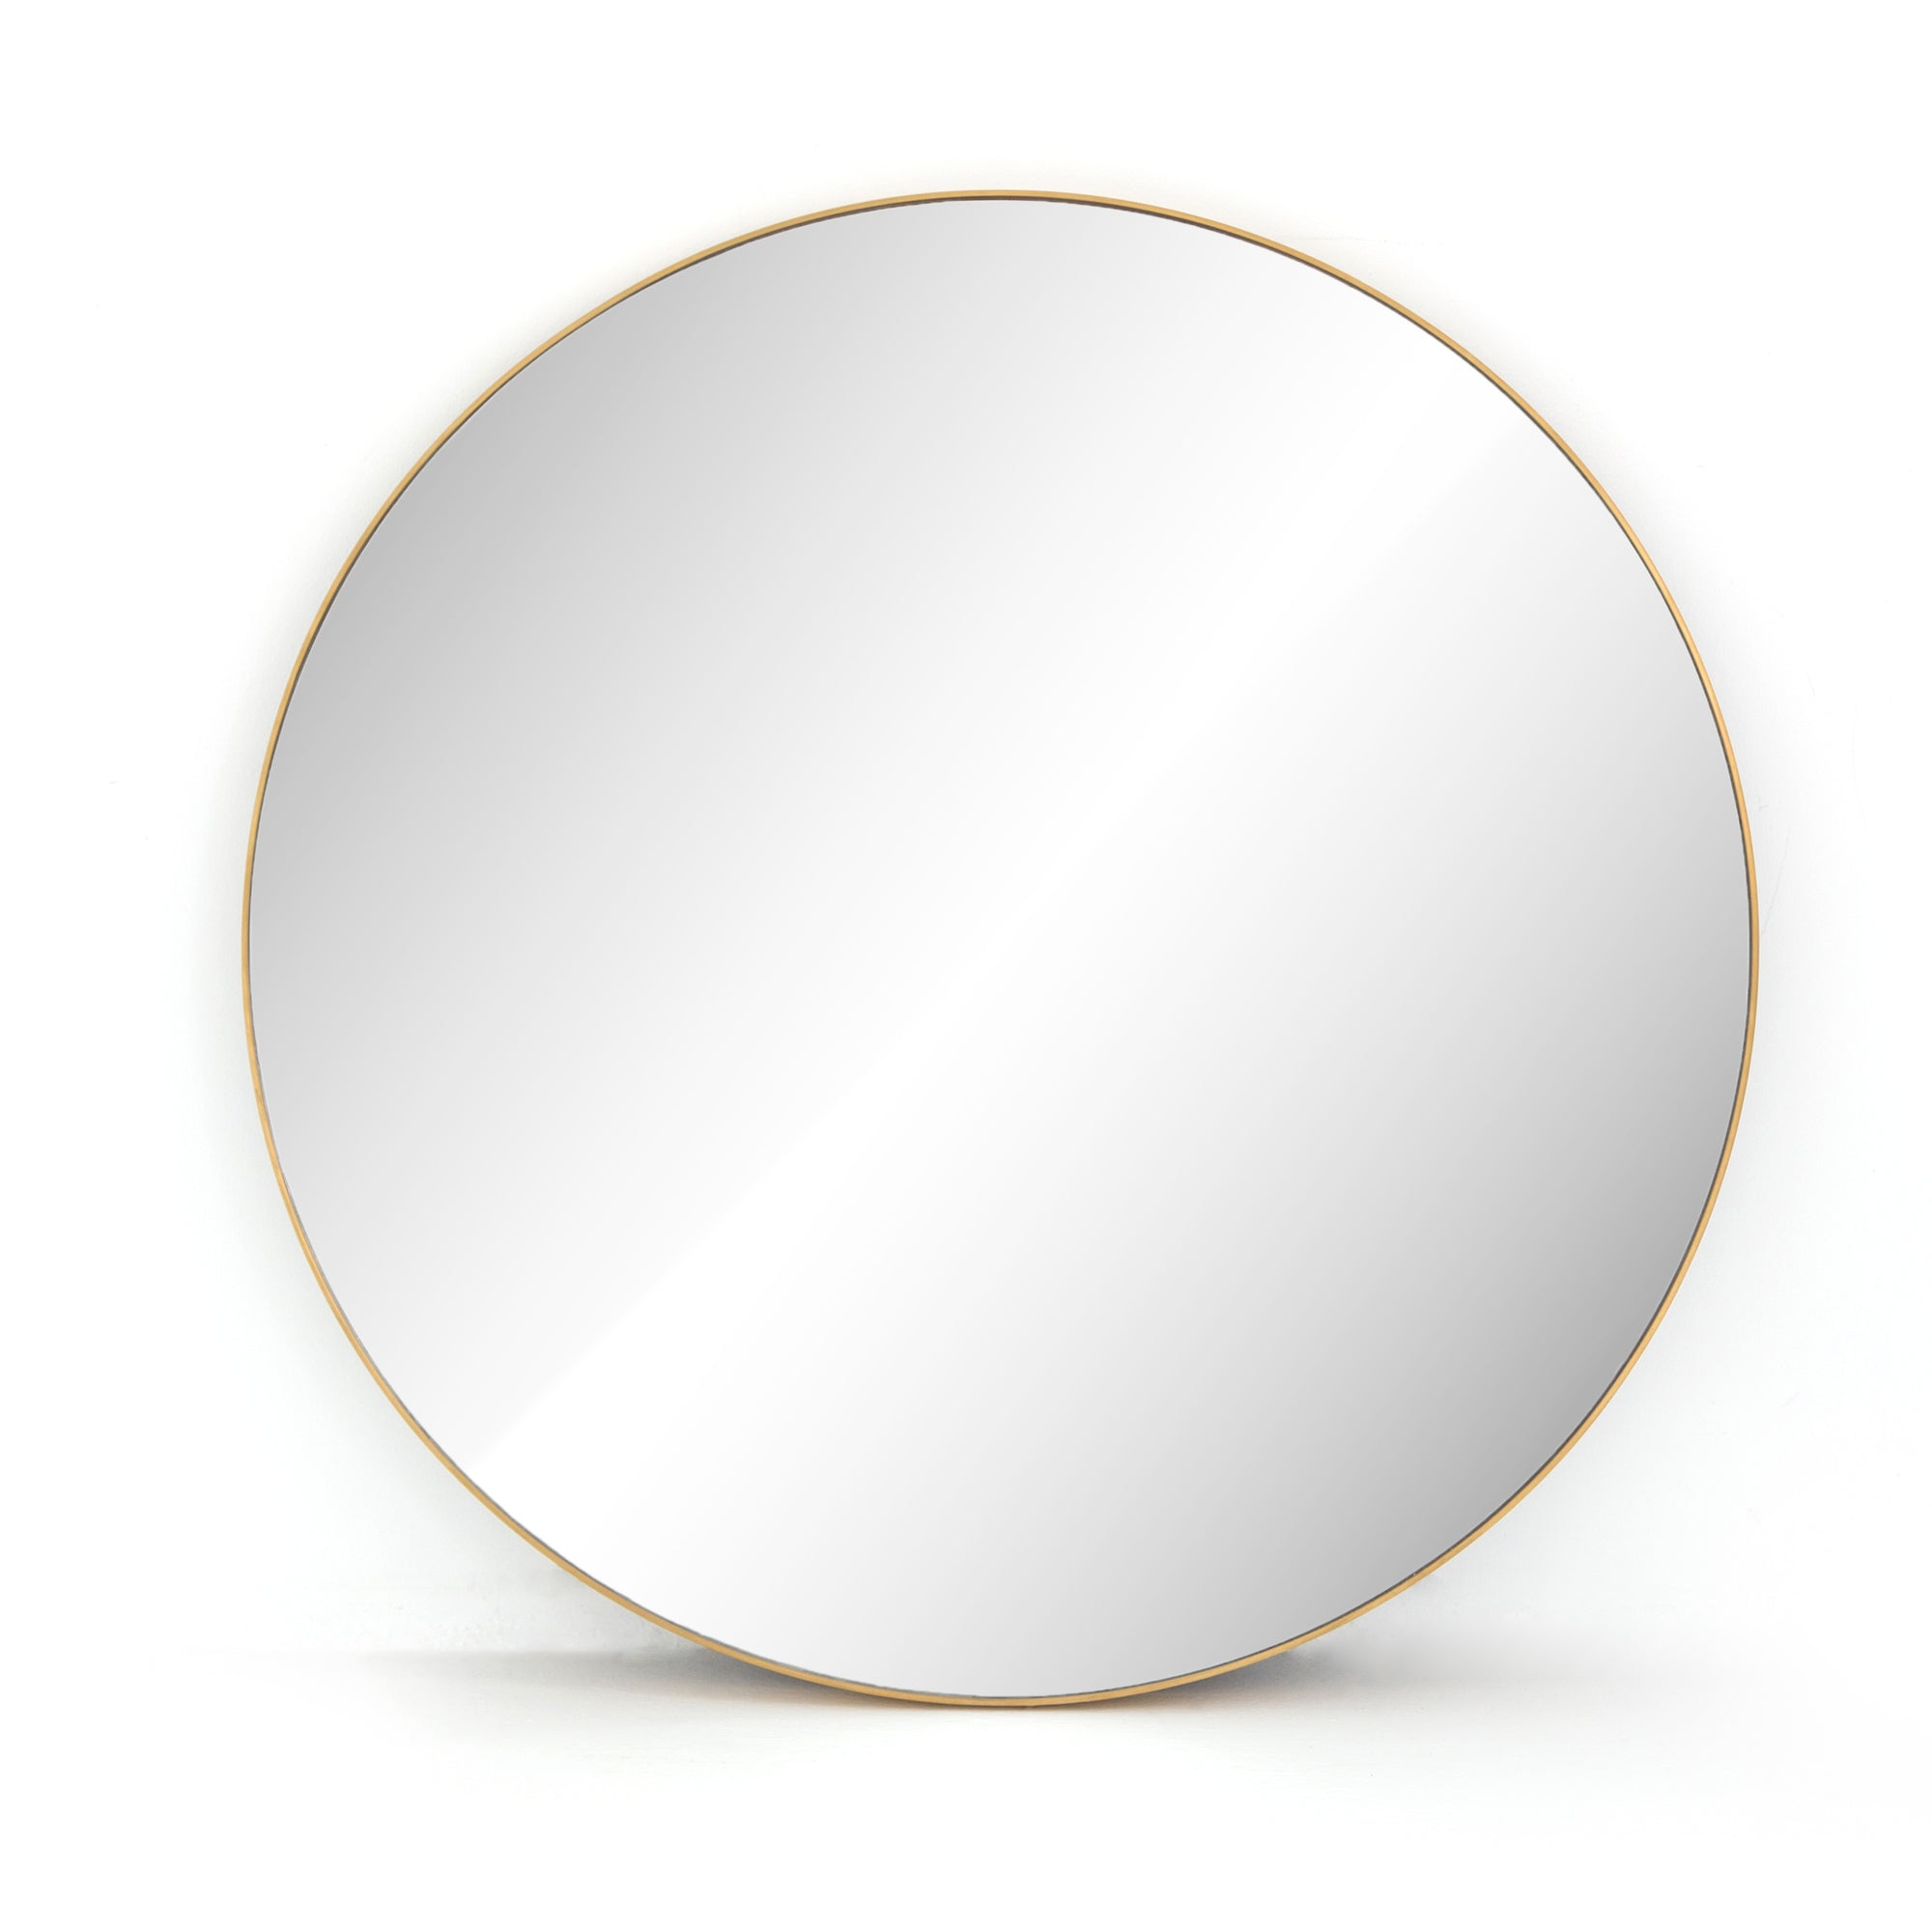 Bellvue Round Mirror - Polished Brass